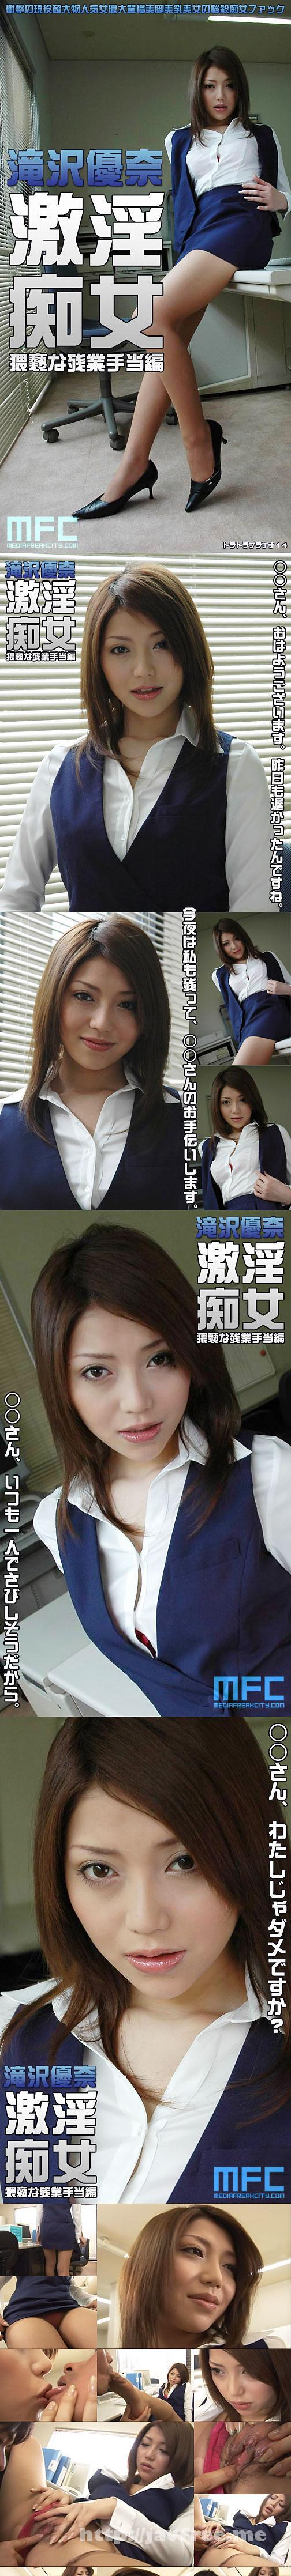 [TRP-014] トラトラプラチナ Vol.14 : 滝沢優奈 - image TRP-014_1 on https://javfree.me